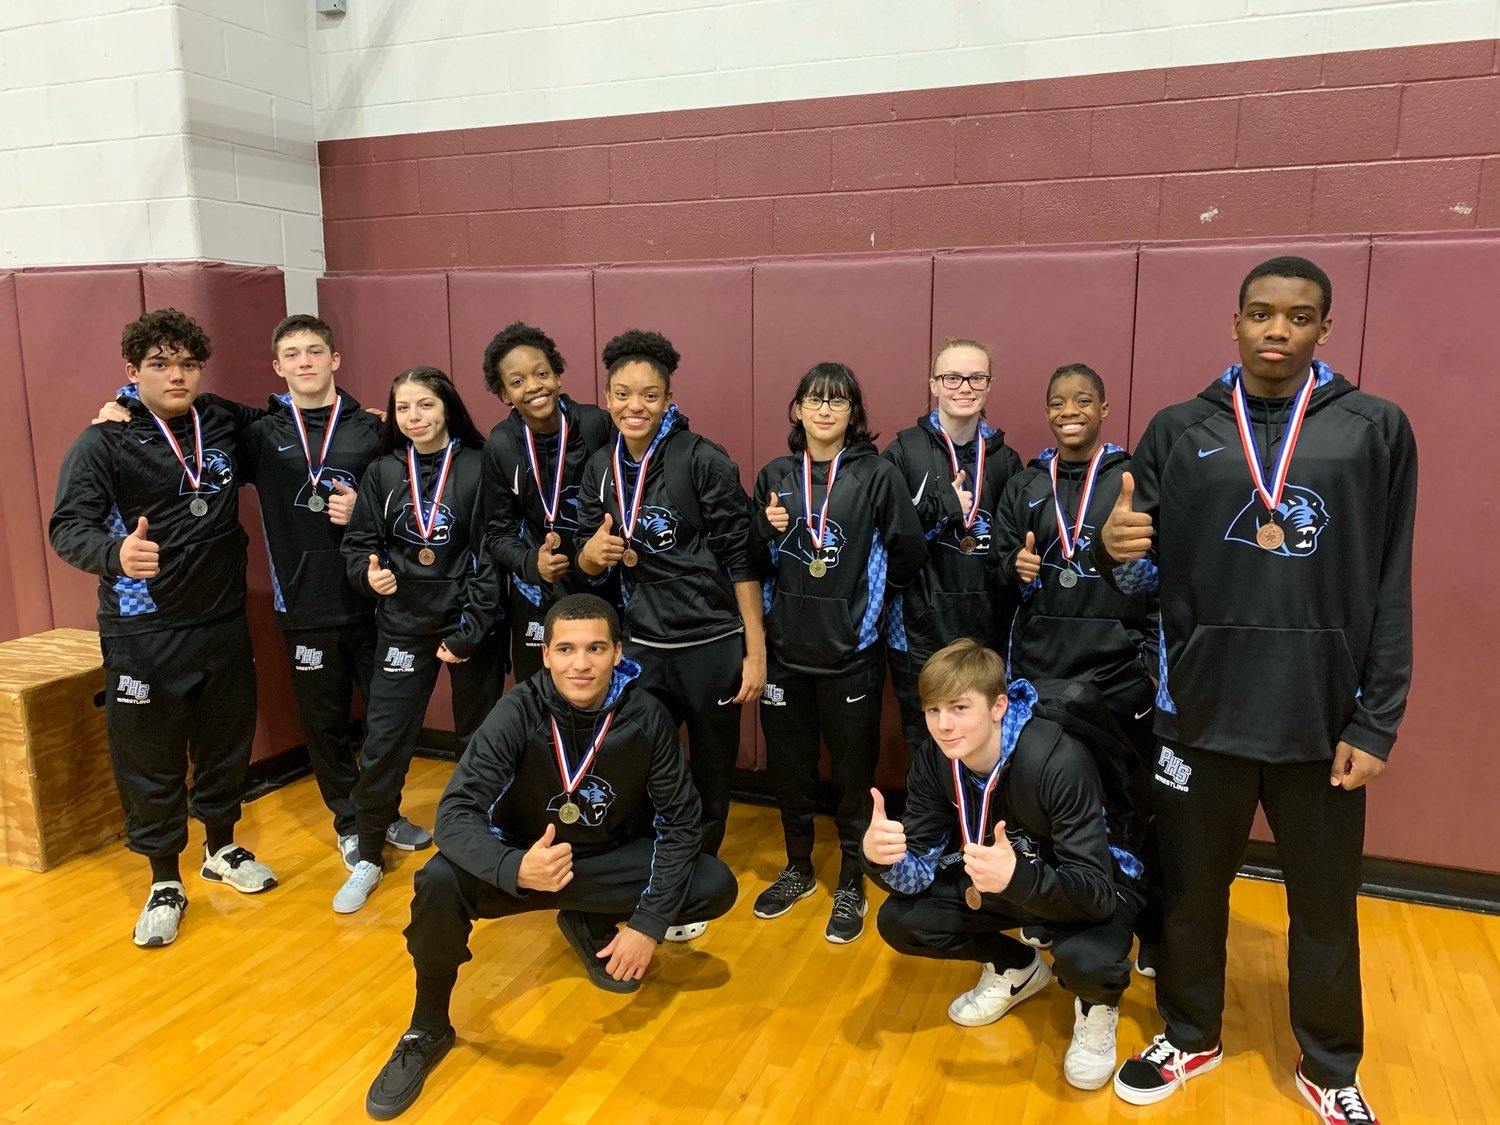 Paetow High qualified 11 wrestlers to the regional meet. The Panther girls placed third overall at the District 11-5A meet on Feb. 5. The Panther boys placed sixth overall.